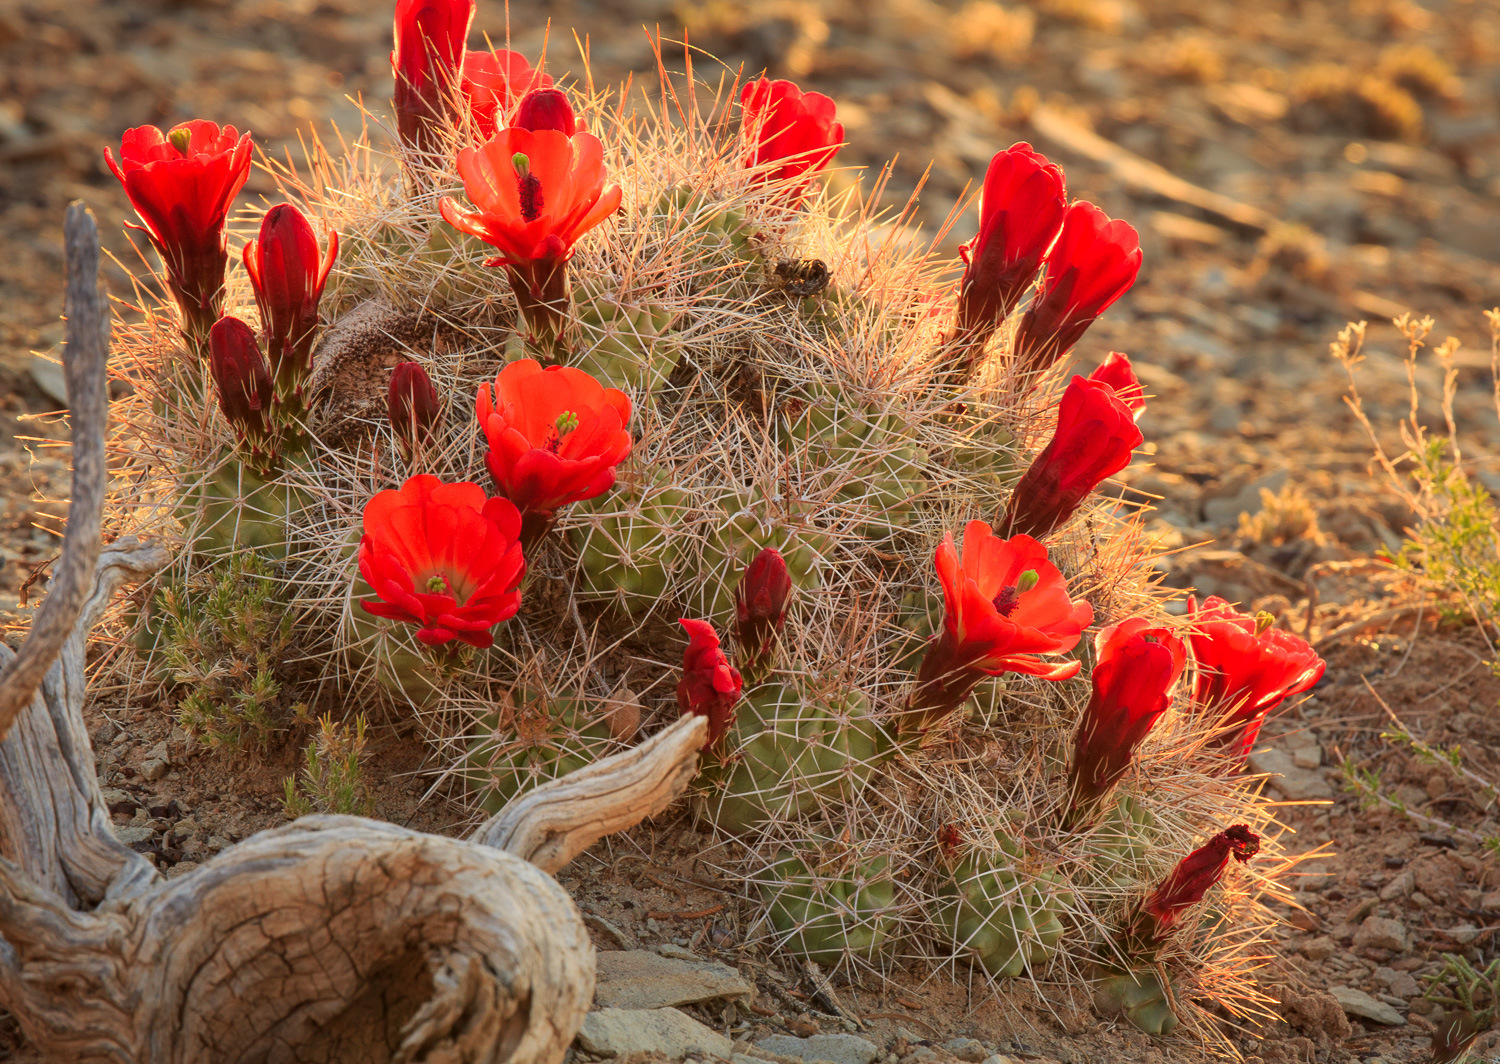 """Claret Cup Cactus (Echinocereus triglochidiatus) are common throughout the Southwest. I found my """"hero"""" in full bloom while exploring the Burr Trail in Glen Canyon National Recreation Area. I thought there was the potential to make a nice photograph so I waited for the early morning rays to creep across the desert floor until they created a nice rim light on the mound. The flowers didn't light up quite the way I imagined, but I think it still turned out to be a nice image."""